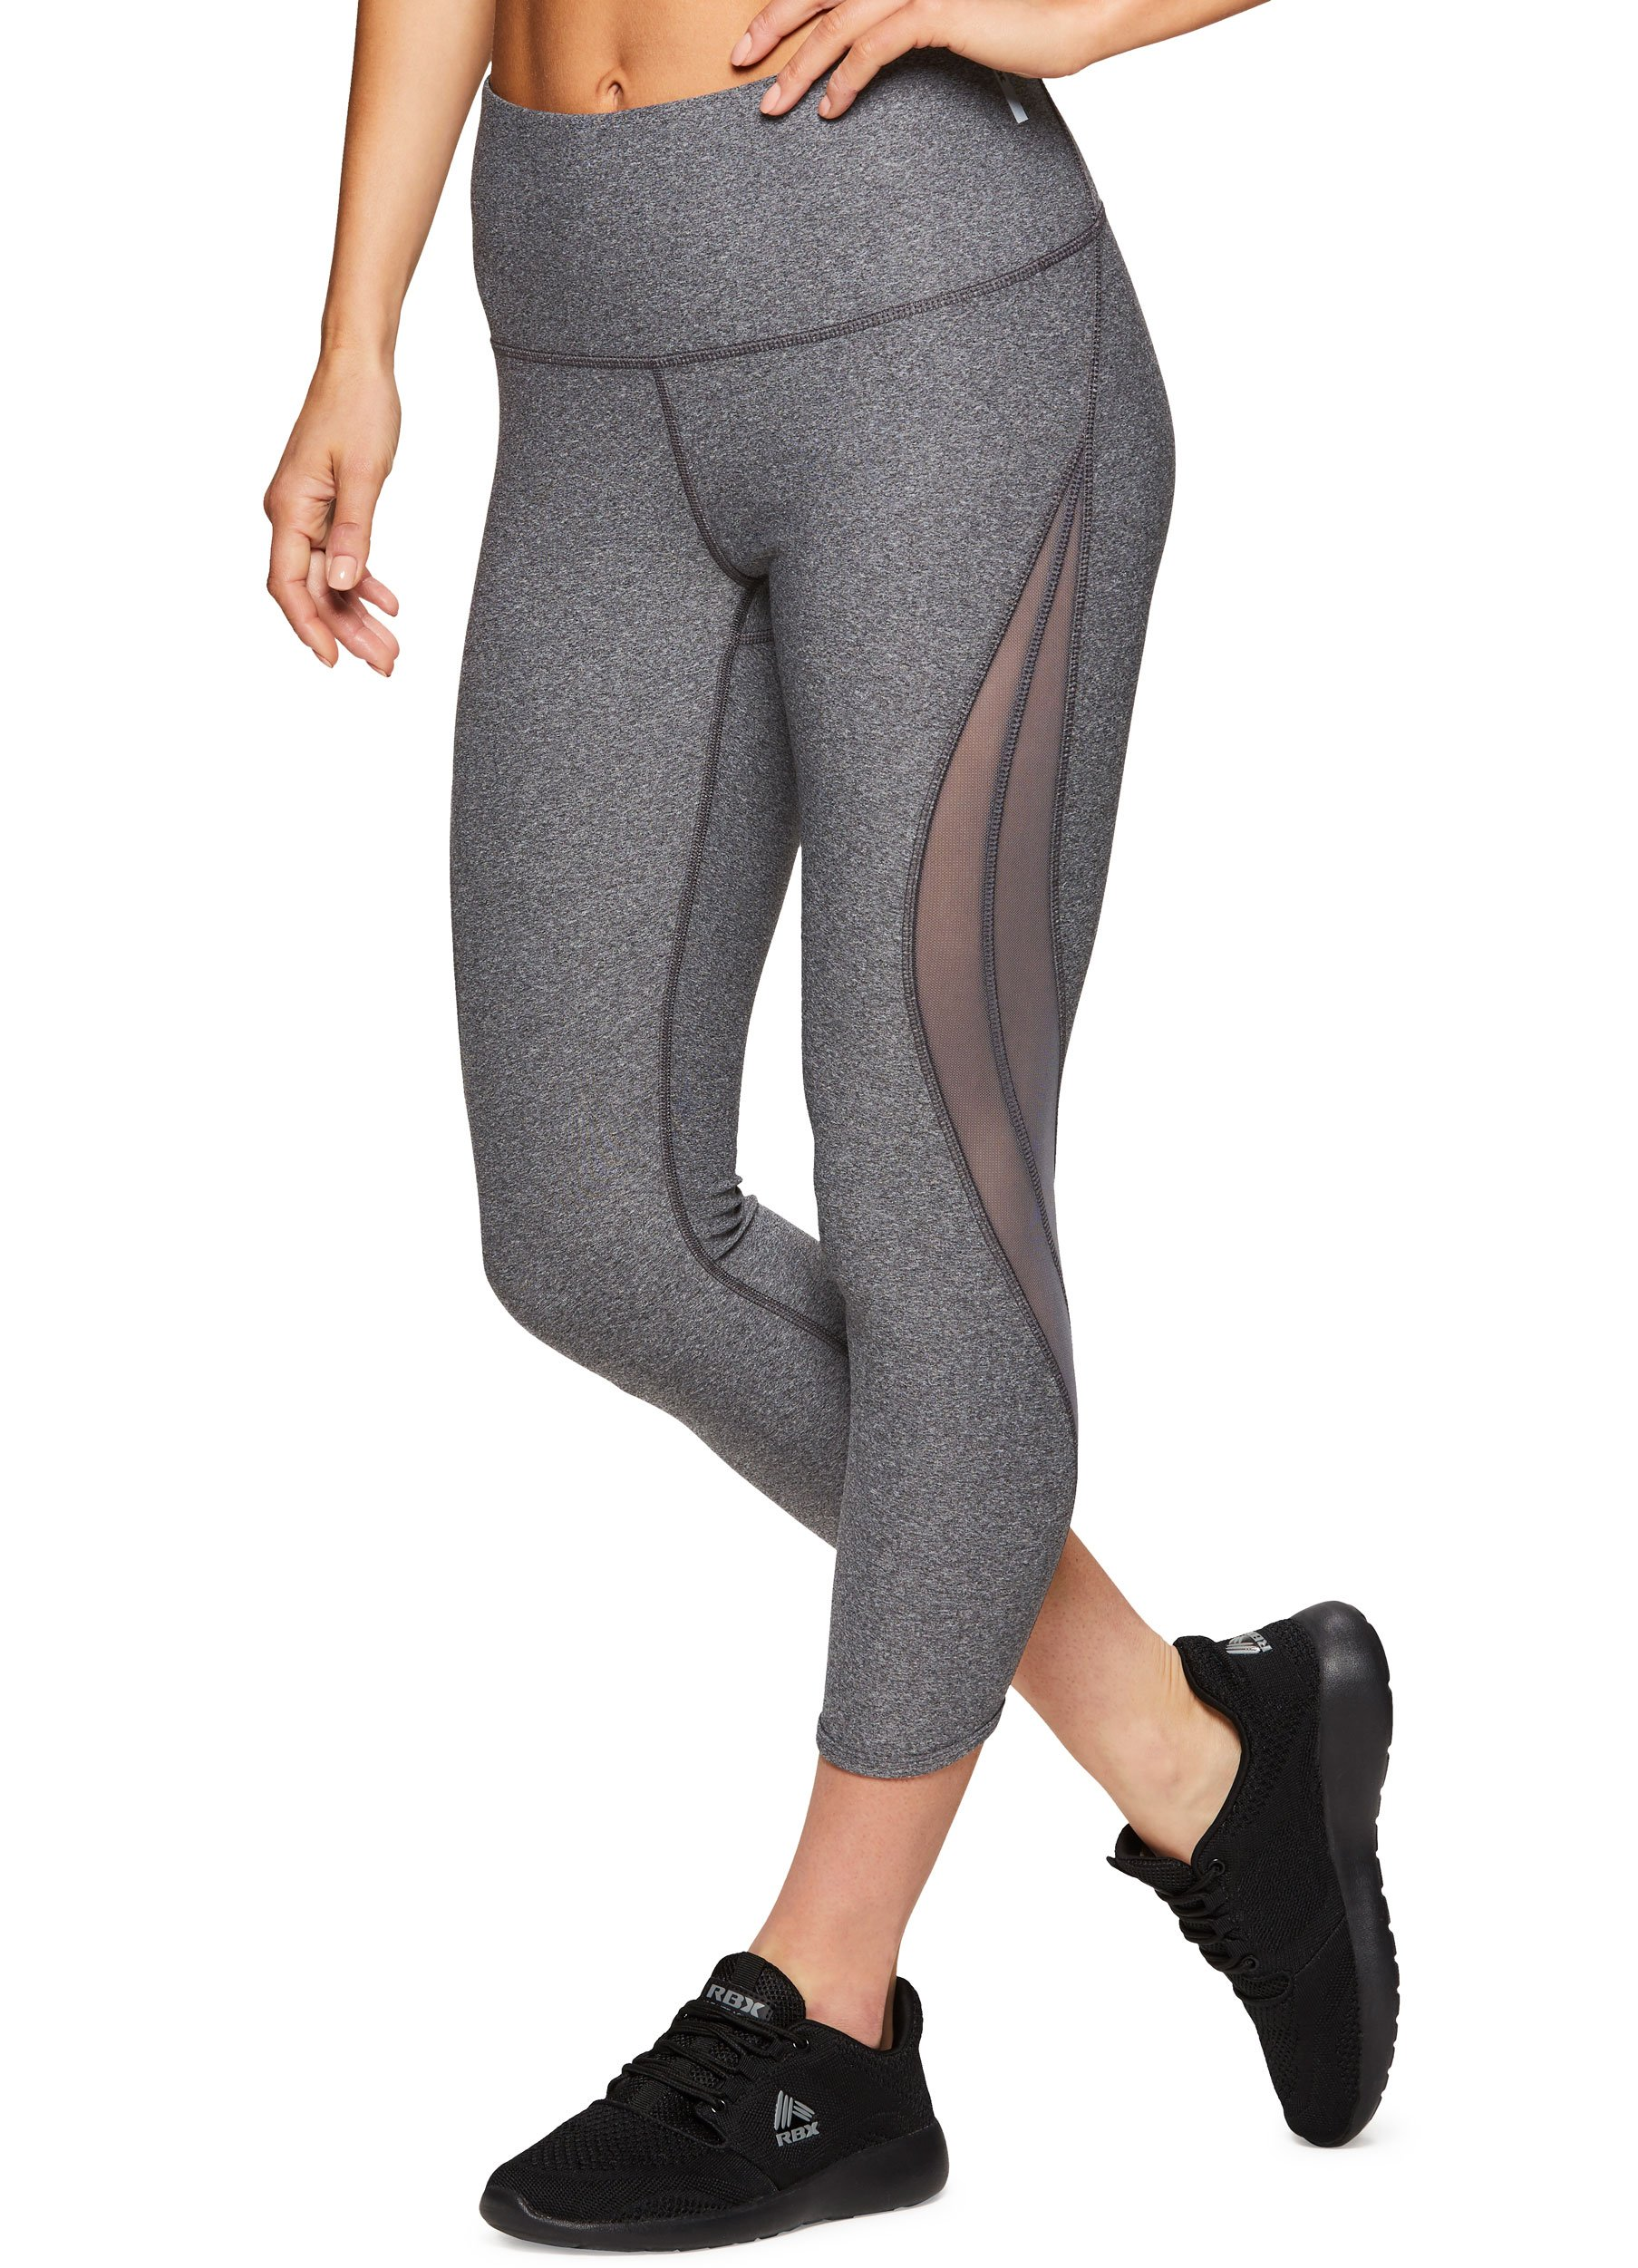 2362a69a2e Galleon - RBX Active Women's Workout Yoga Leggings 18 Charcoal M